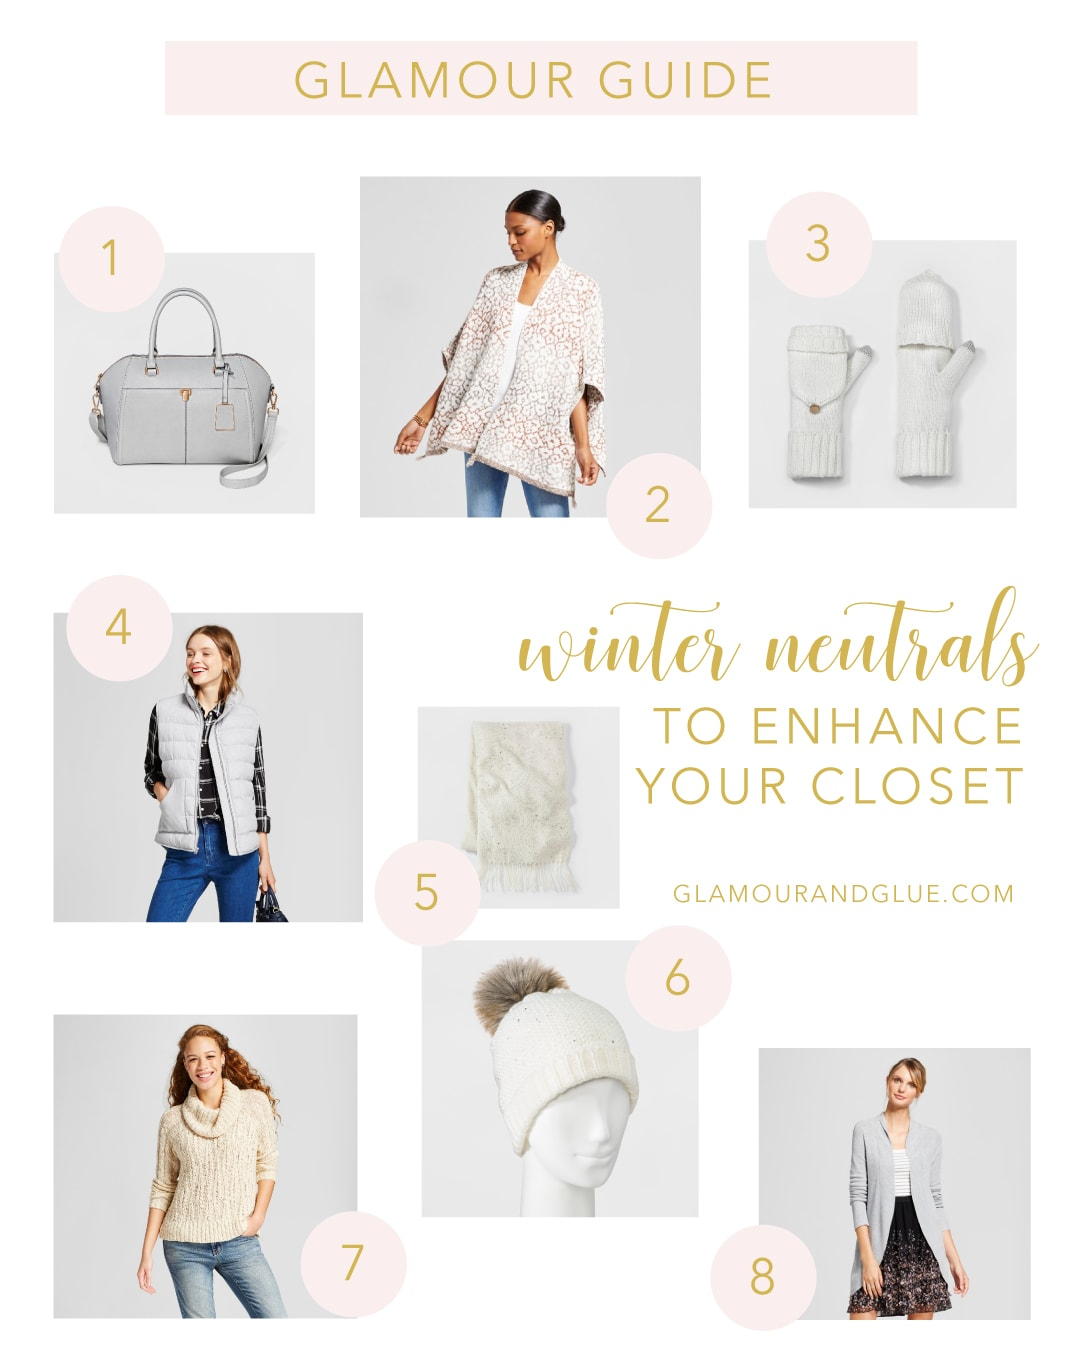 Glamour Guide - 8 Winter Neutrals to Enhance Your Closet